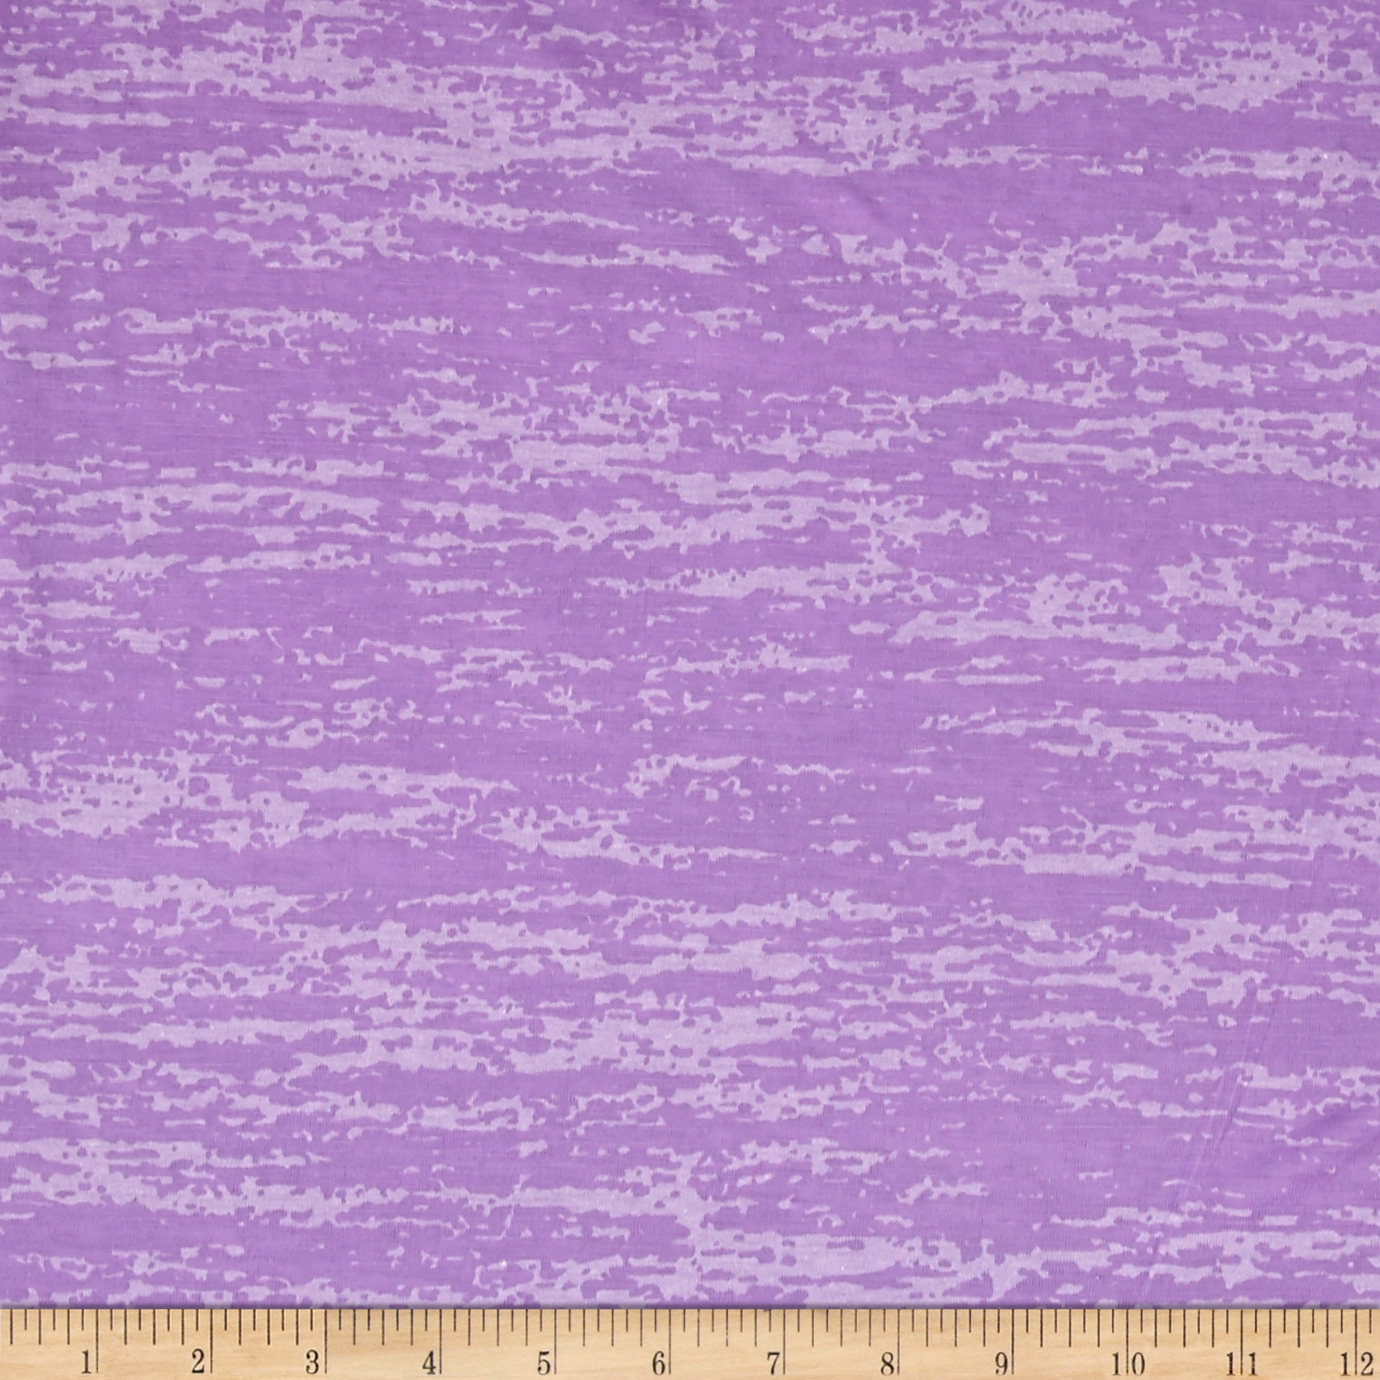 Splash Burnout Jersey Knit Lavender Fabric by Stardom Specialty in USA